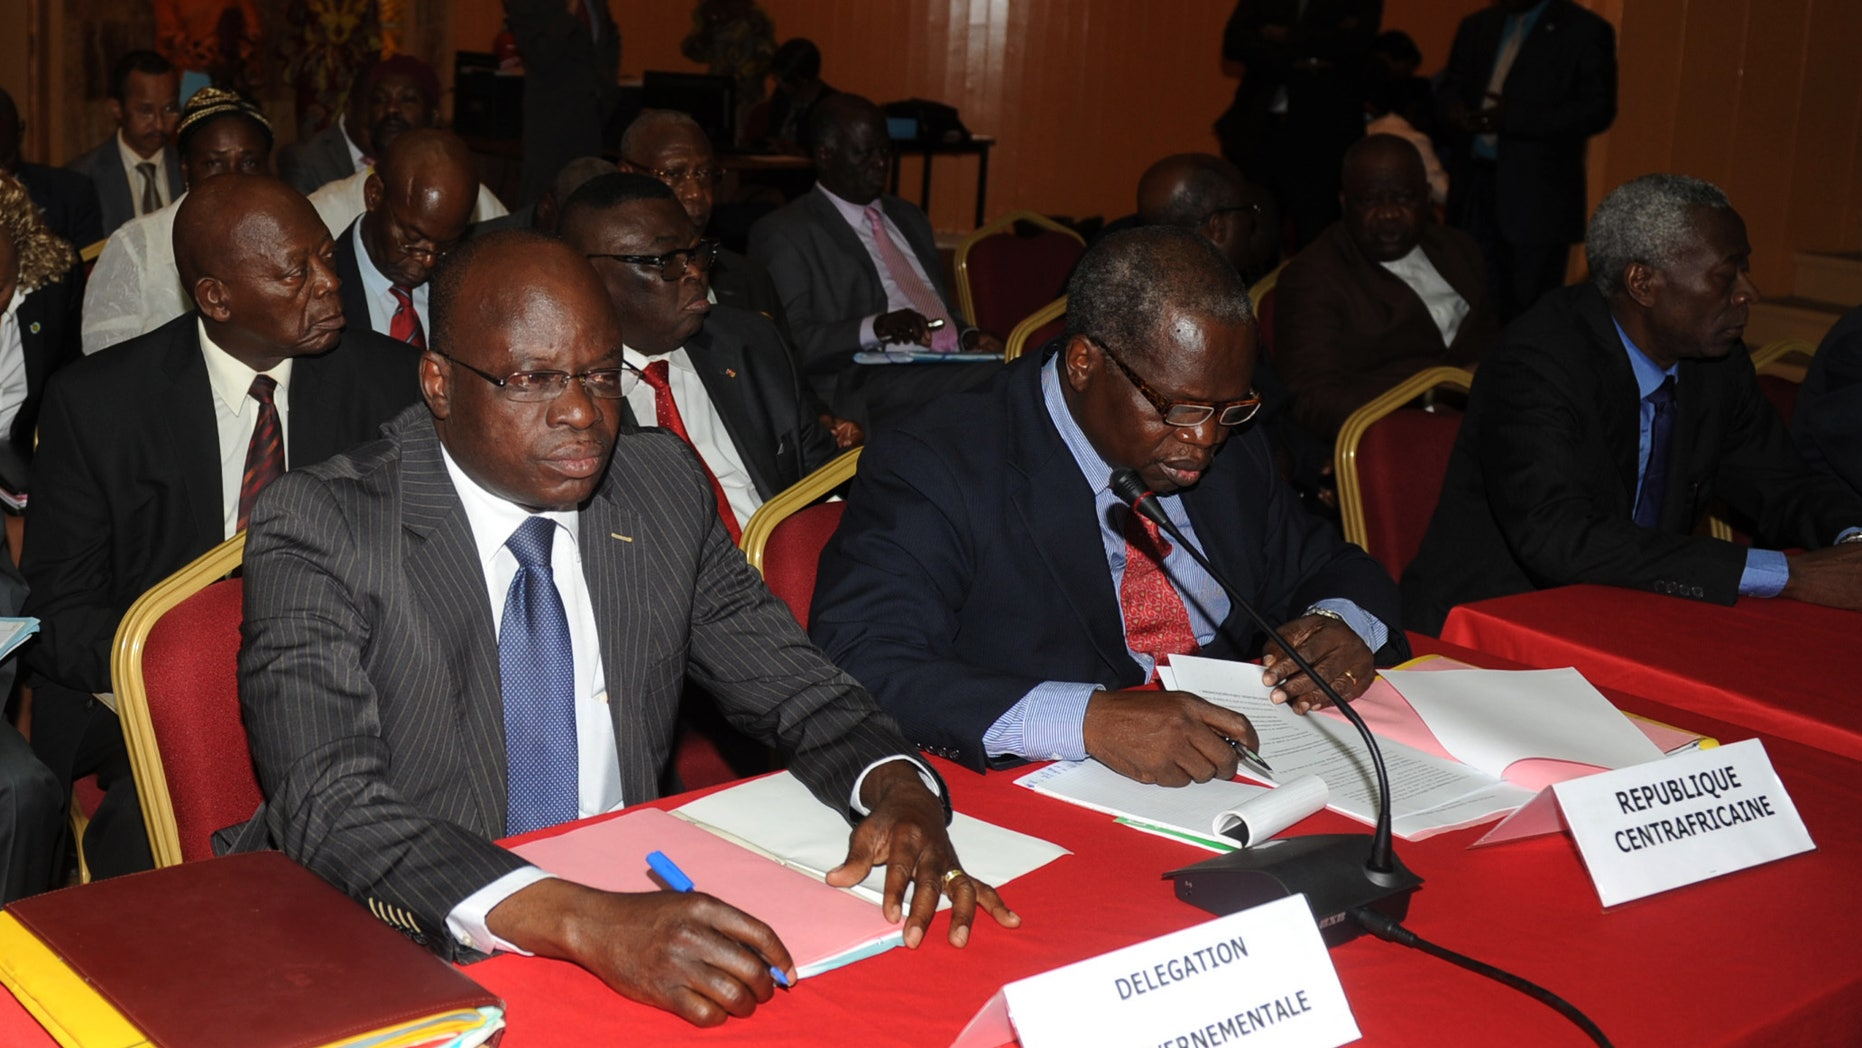 Members of the Central African Republic government delegation await the opening of peace talks with the Seleka rebel alliance, who have taken control of much of the country's north, in Libreville, Gabon, Wednesday, Jan. 9, 2013. Gabon government officials say that talks on the crisis in Central African Republic began Wednesday with representatives of the government, rebels and other groups gathering in this nearby country.(AP Photo/Joel Bouopda Tatou)